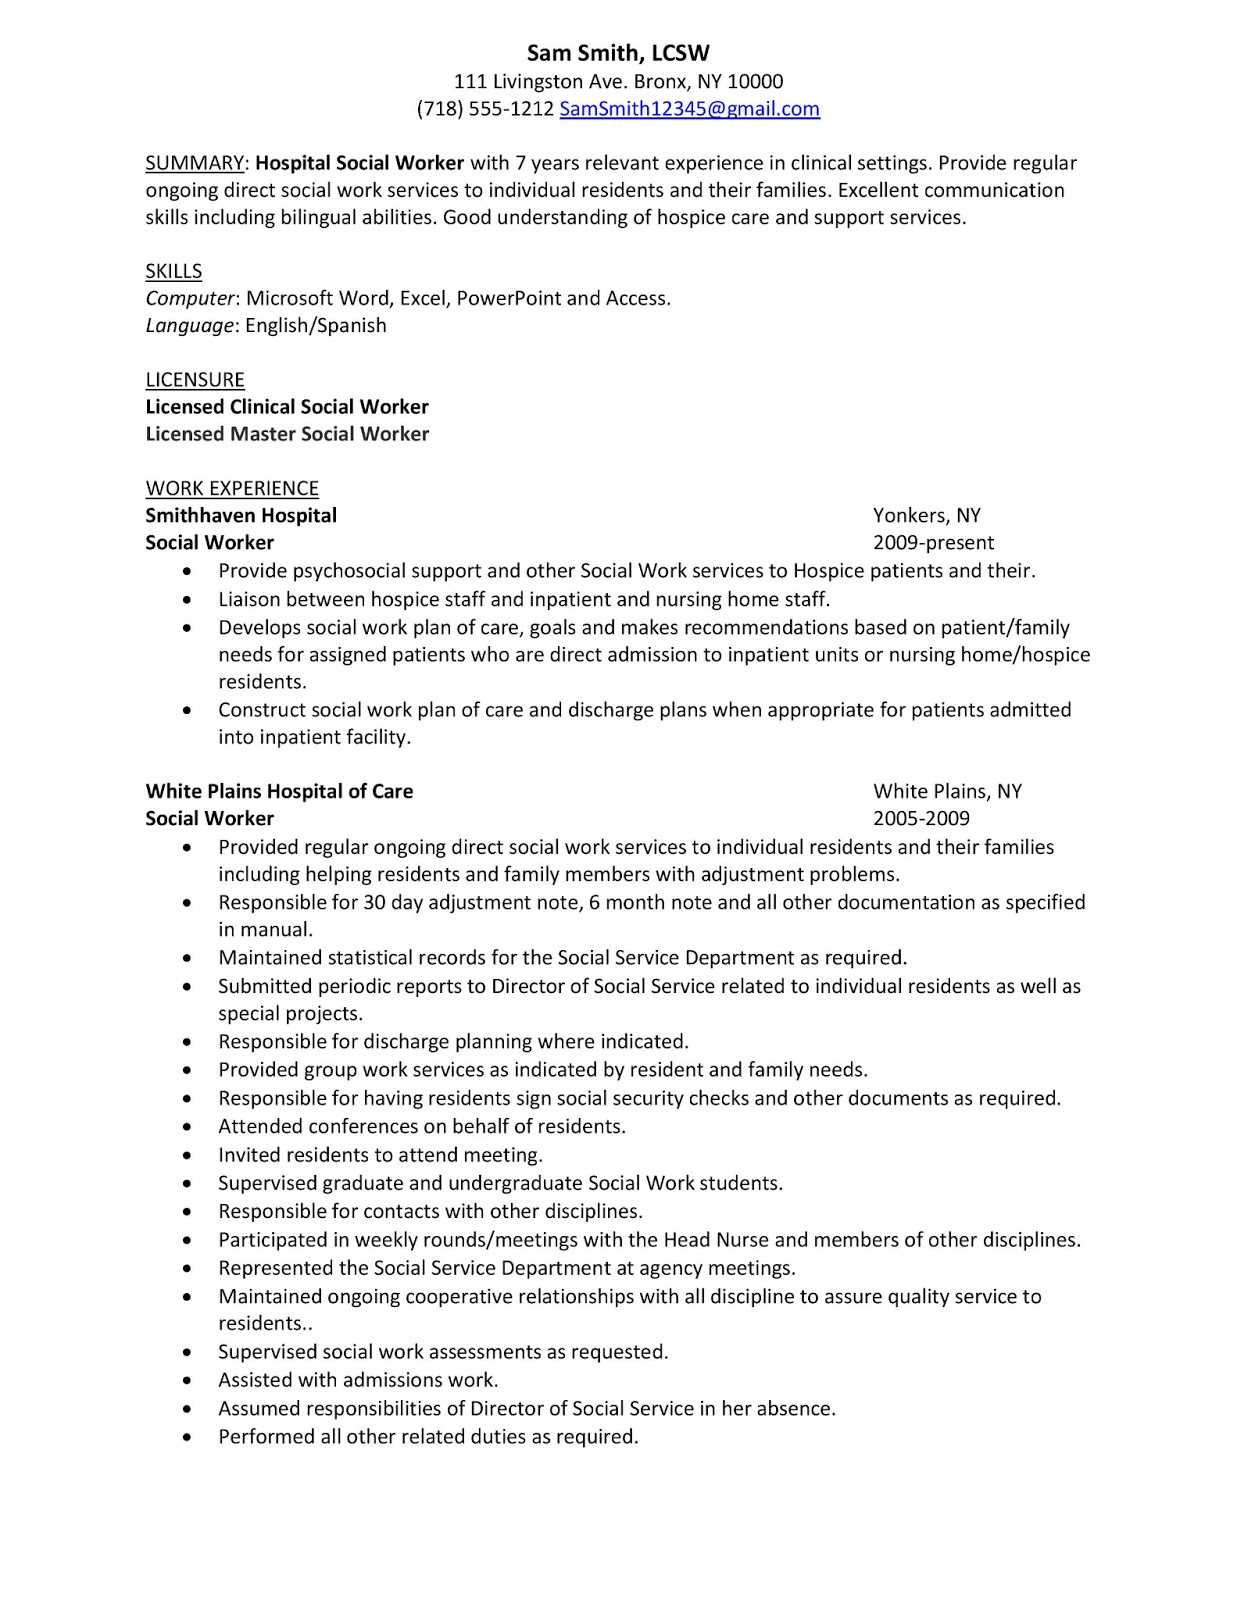 Resume Objective Clinic Nurse  Writing And Editing Services